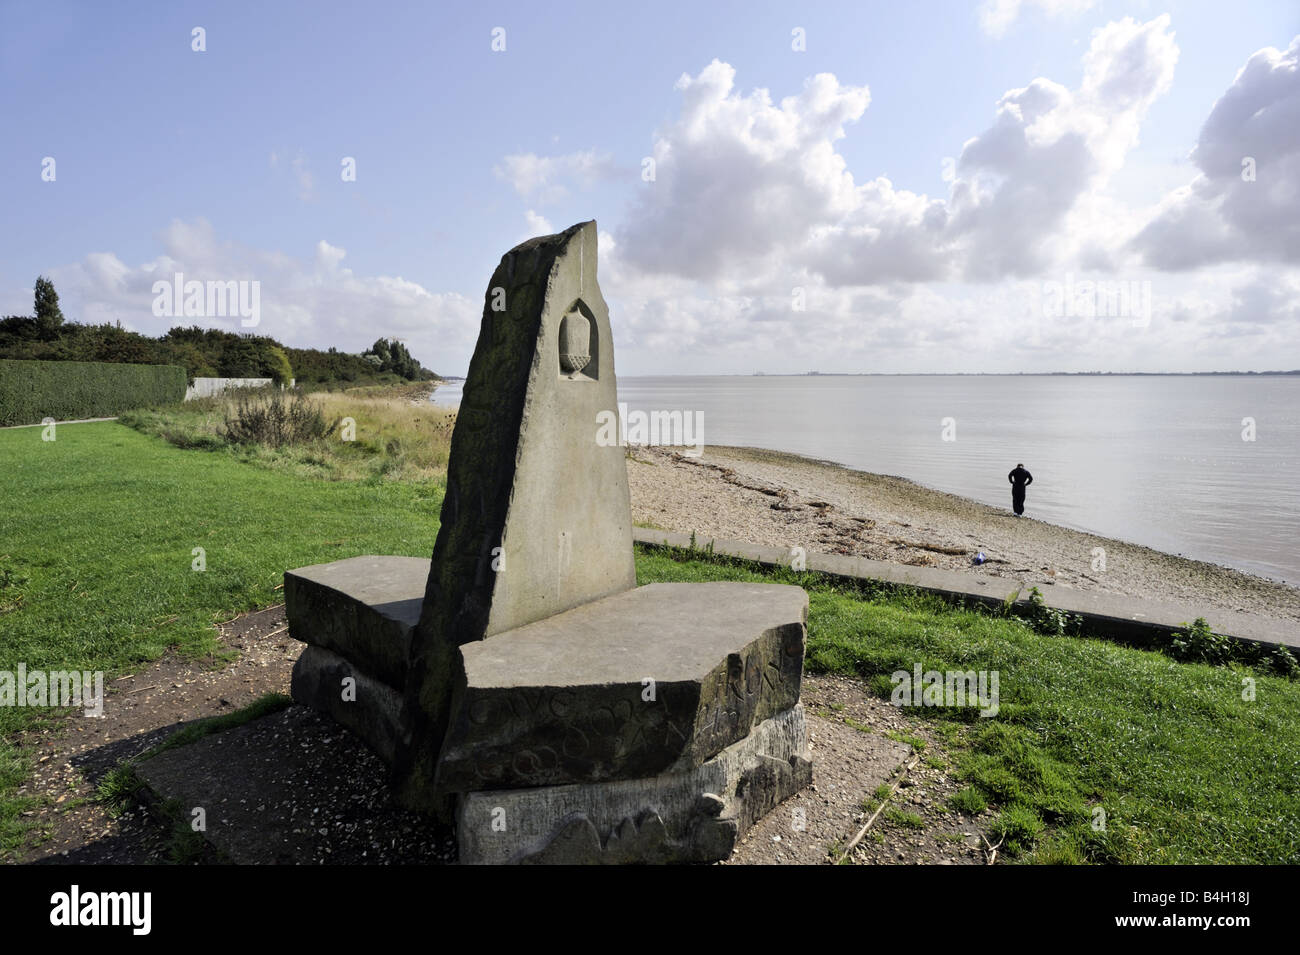 Marker stone at the beginning of the Yorkshire Wolds Way, near the Humber Bridge, Hessle, Hull, Yorkshire - Stock Image